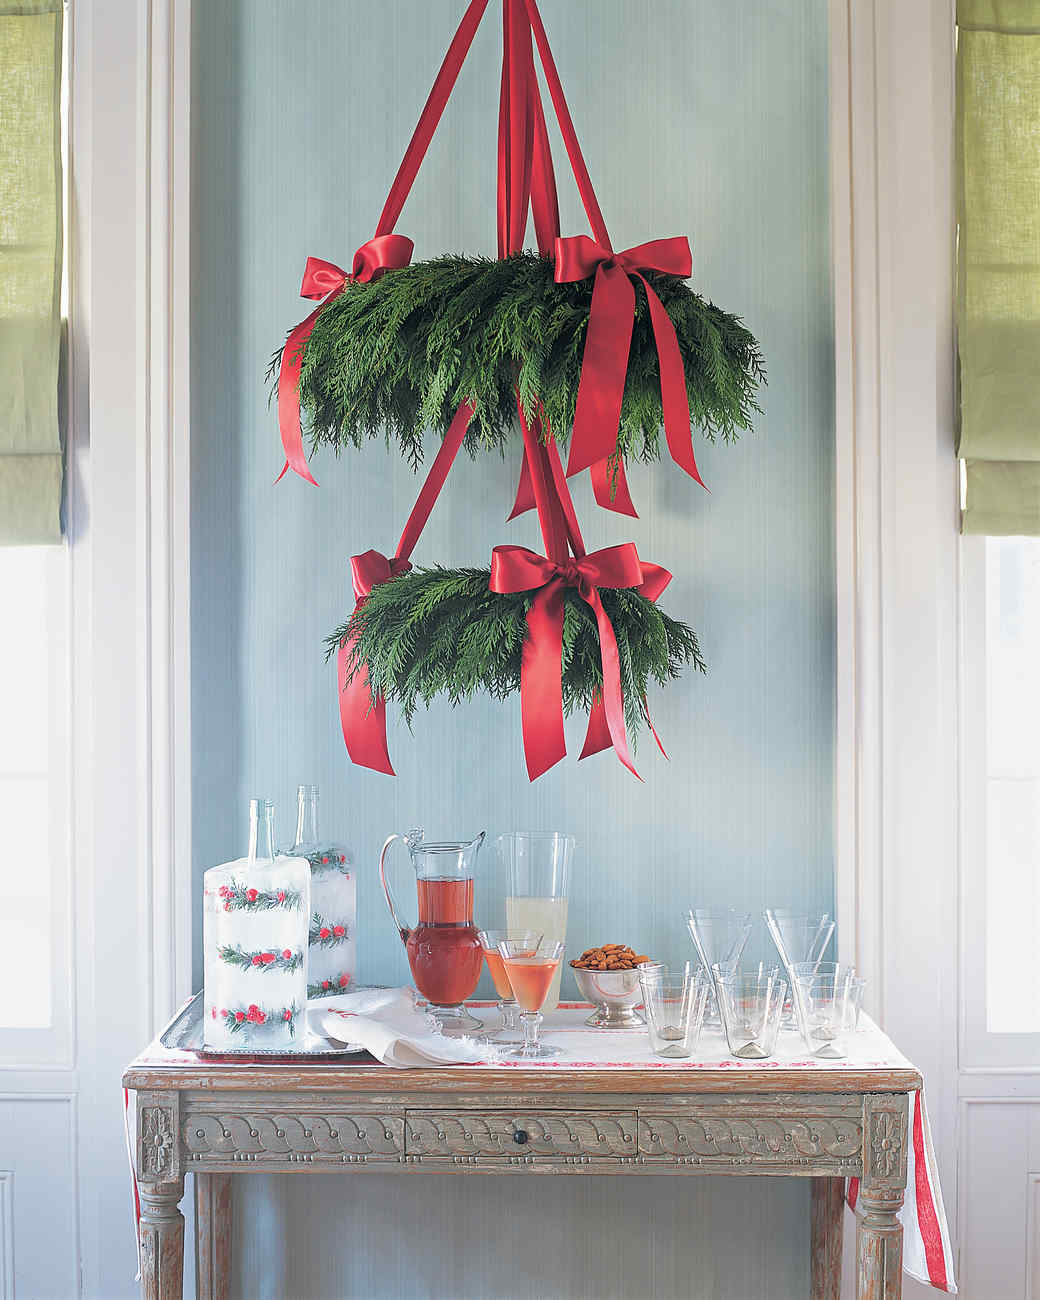 Simple Christmas Home Decorations: Quick Christmas Decorating Ideas